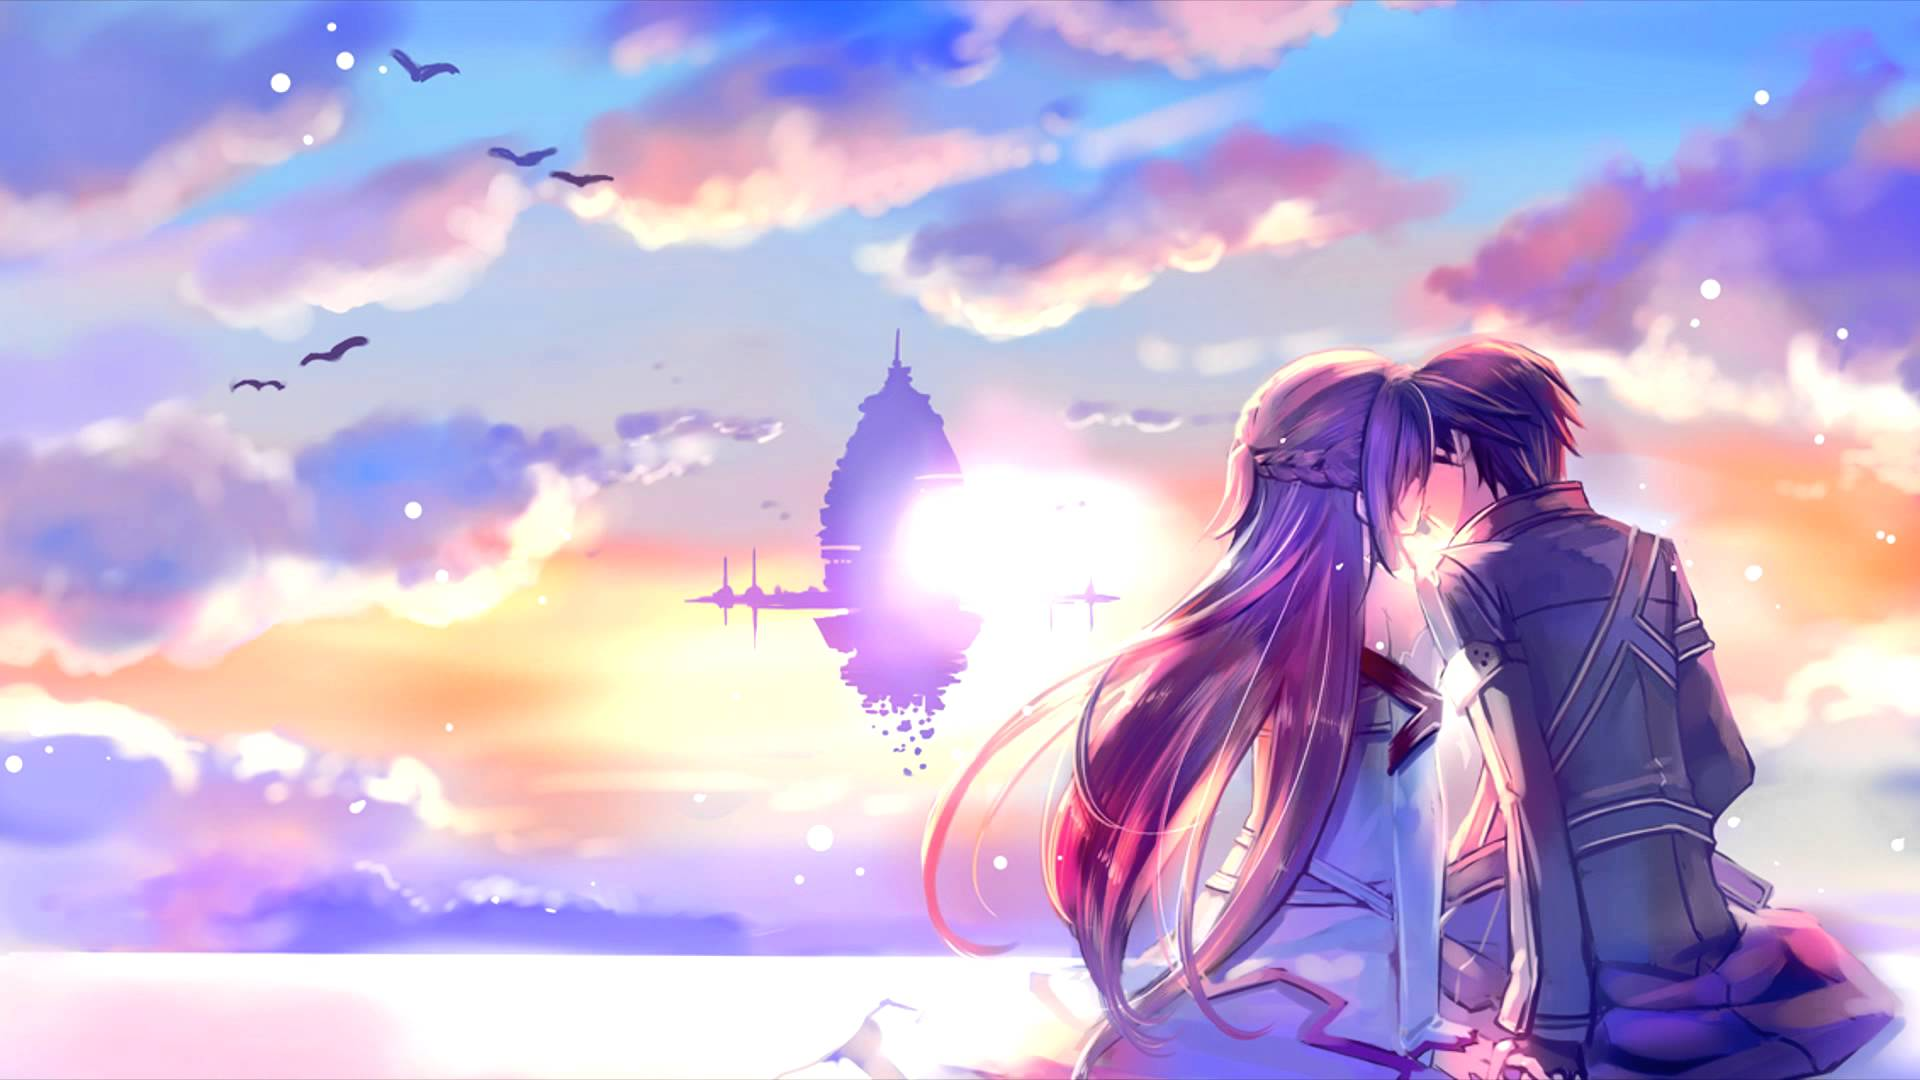 Love Romantic Kiss Hd Wallpaper : Romantic Anime Wallpapers - Wallpaper cave